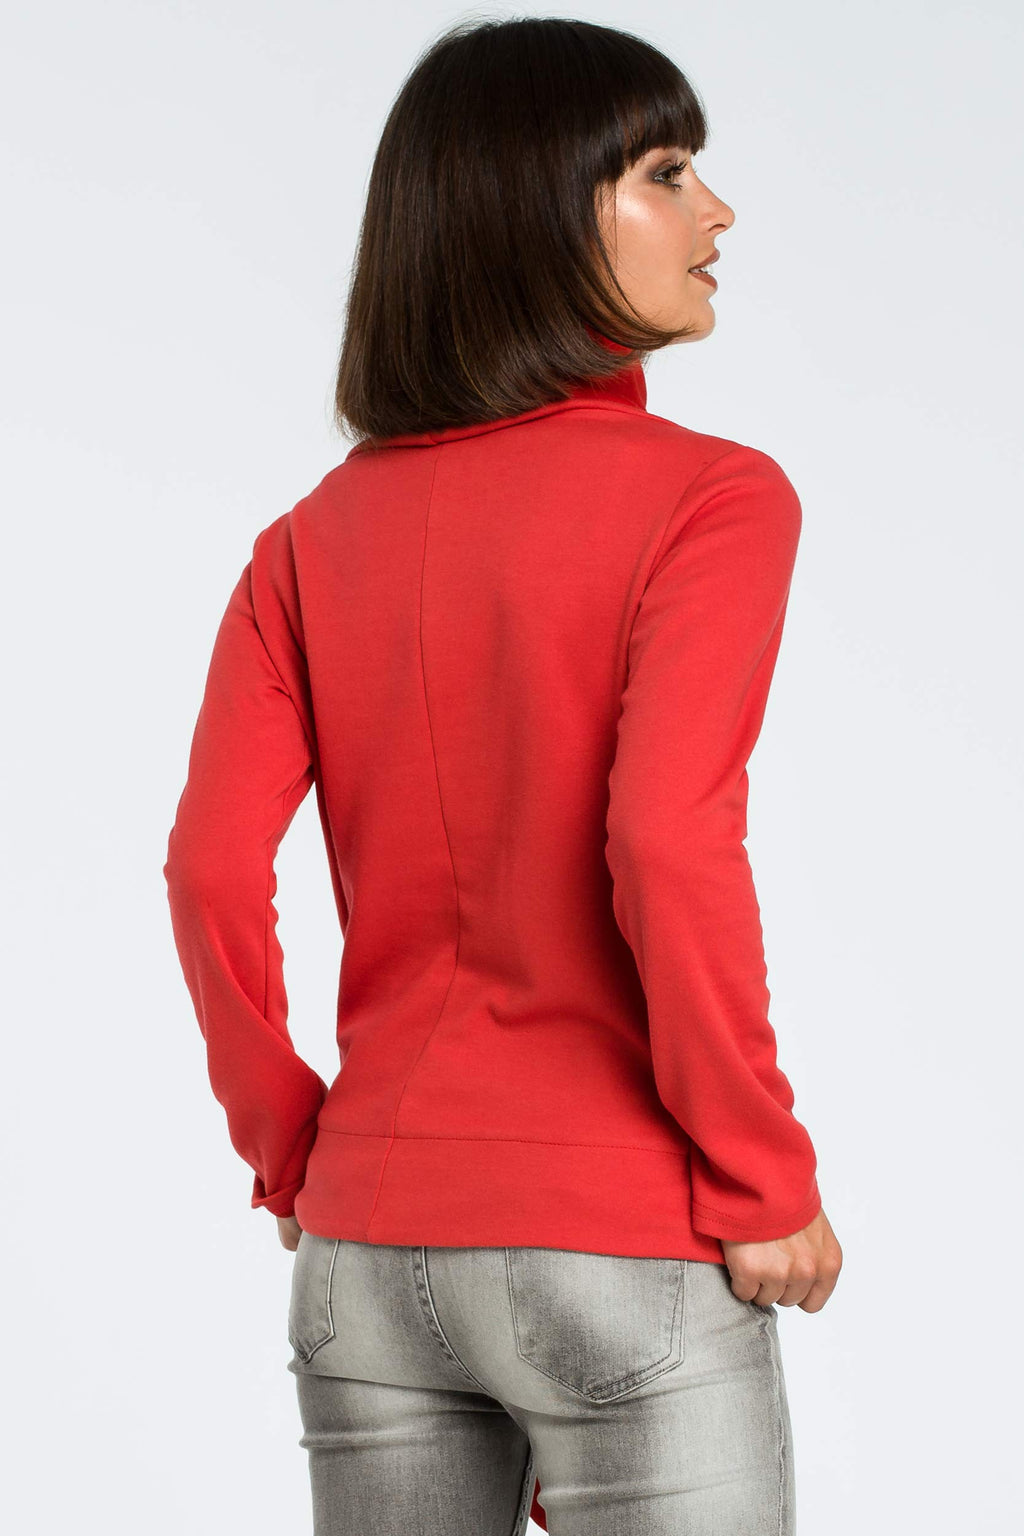 High Collared Red Sweatshirt With A Side Tie